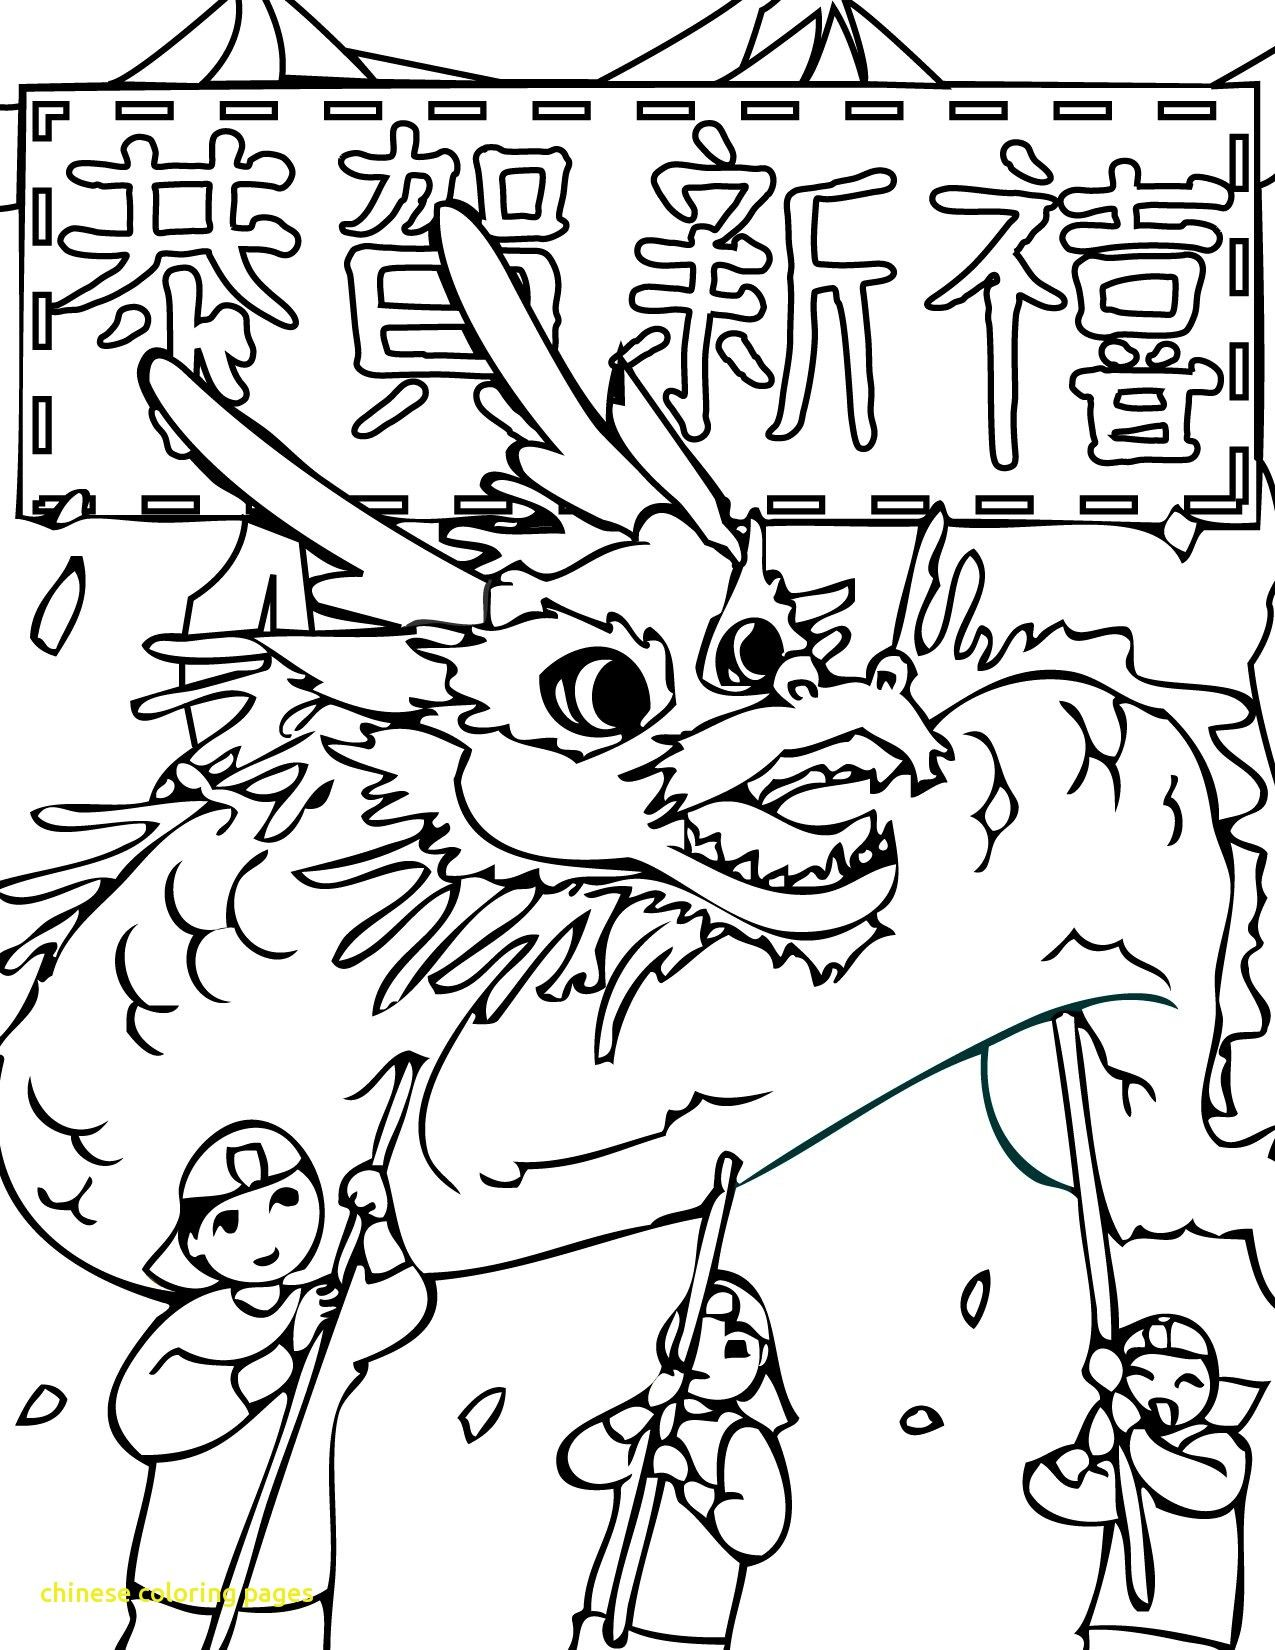 1275x1650 Chinese Coloring Pages With Plain Design China Coloring Pages